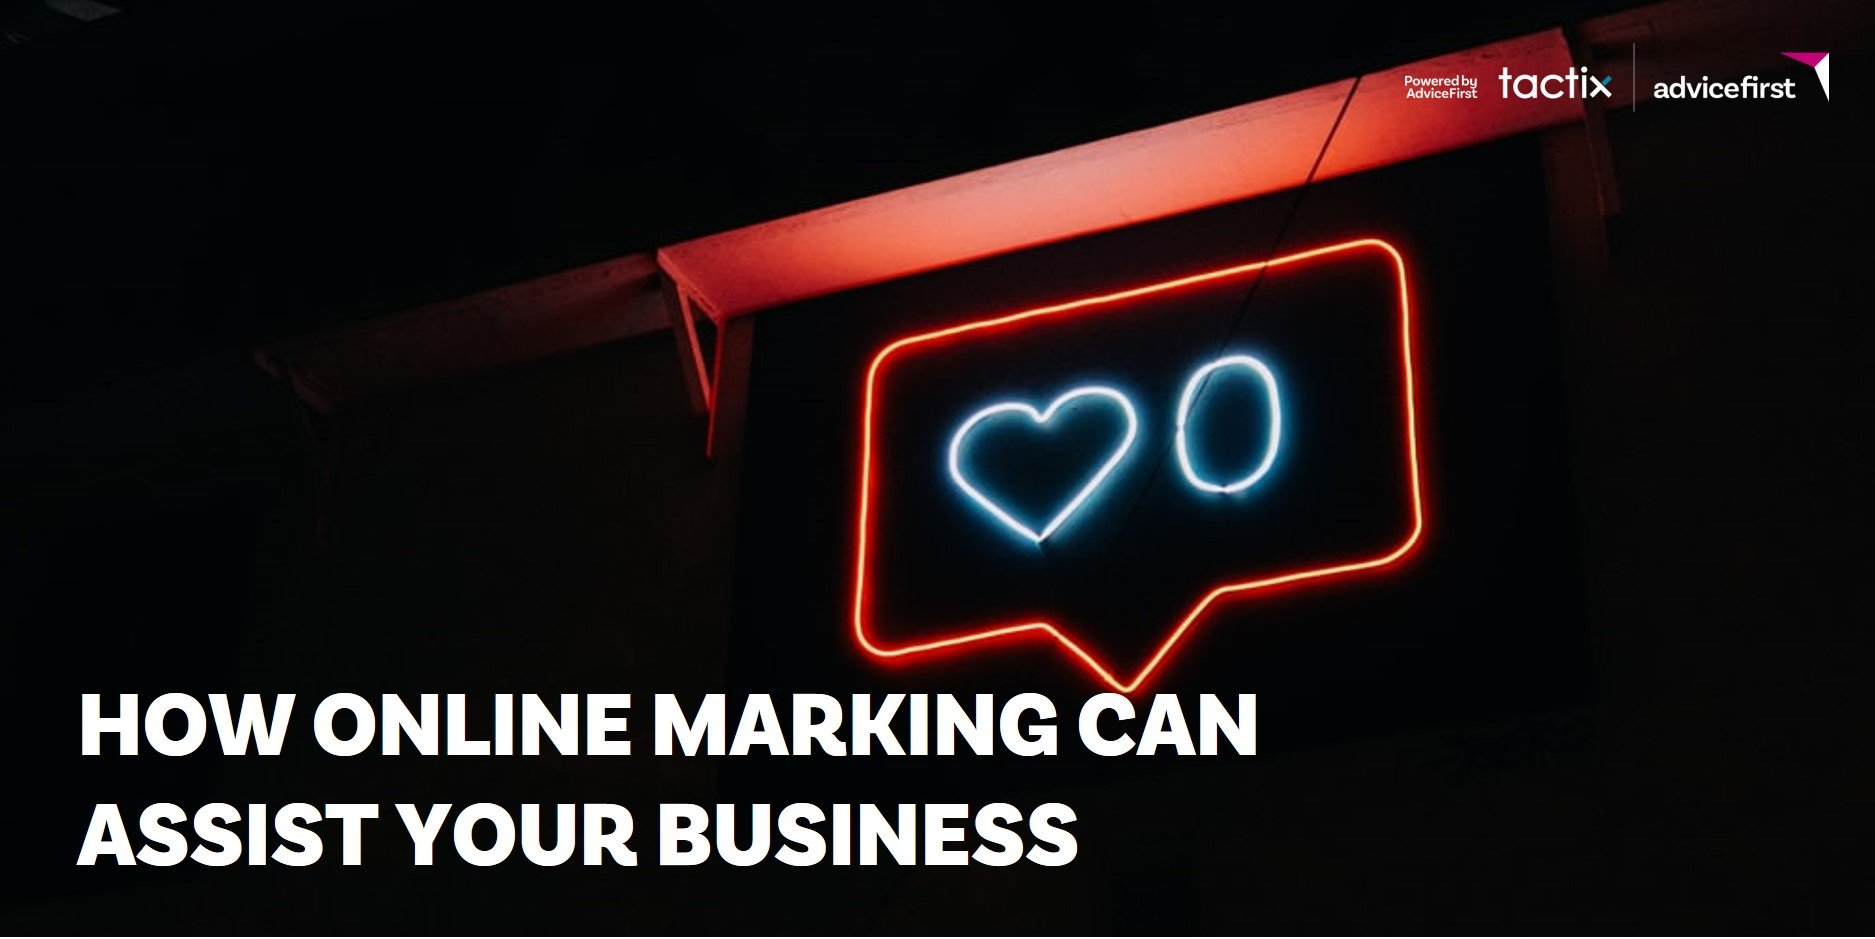 Online marketing 1 1 - Understanding how online marketing can assist your business